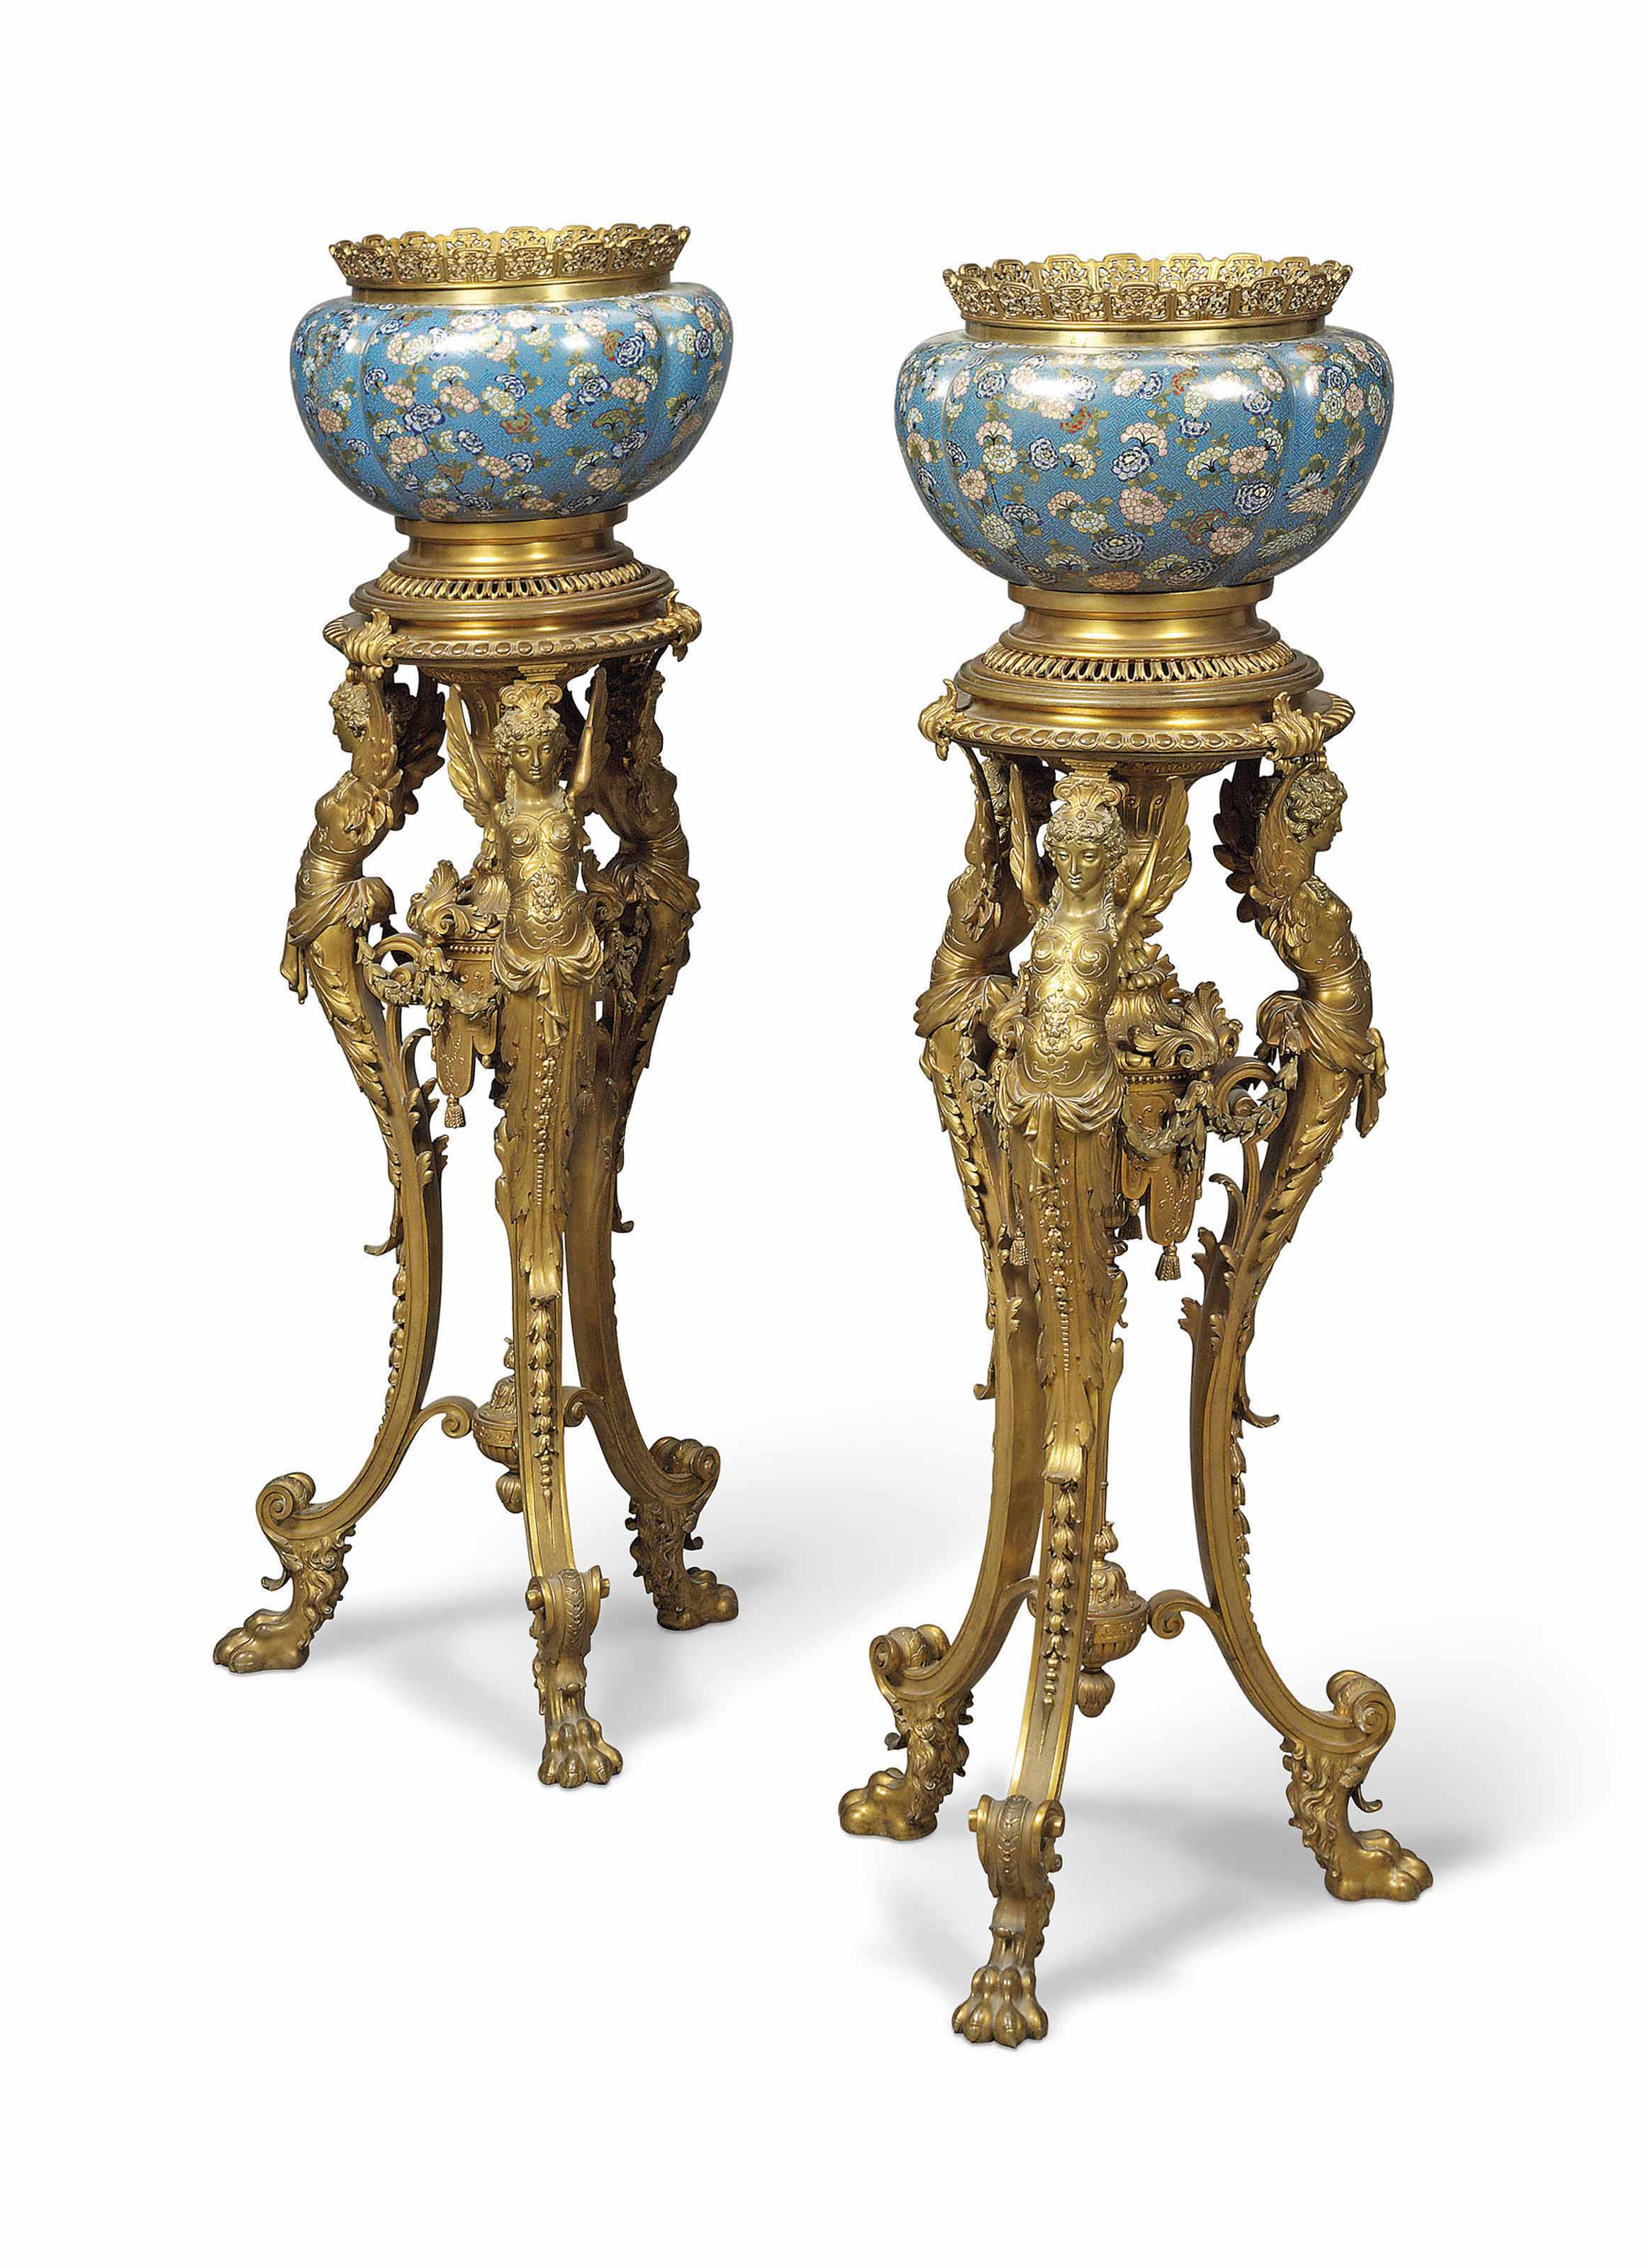 A PAIR OF FRENCH ORMOLU AND CLOISONNE ENAMEL LOBED JARDINIERES-ON-STANDS